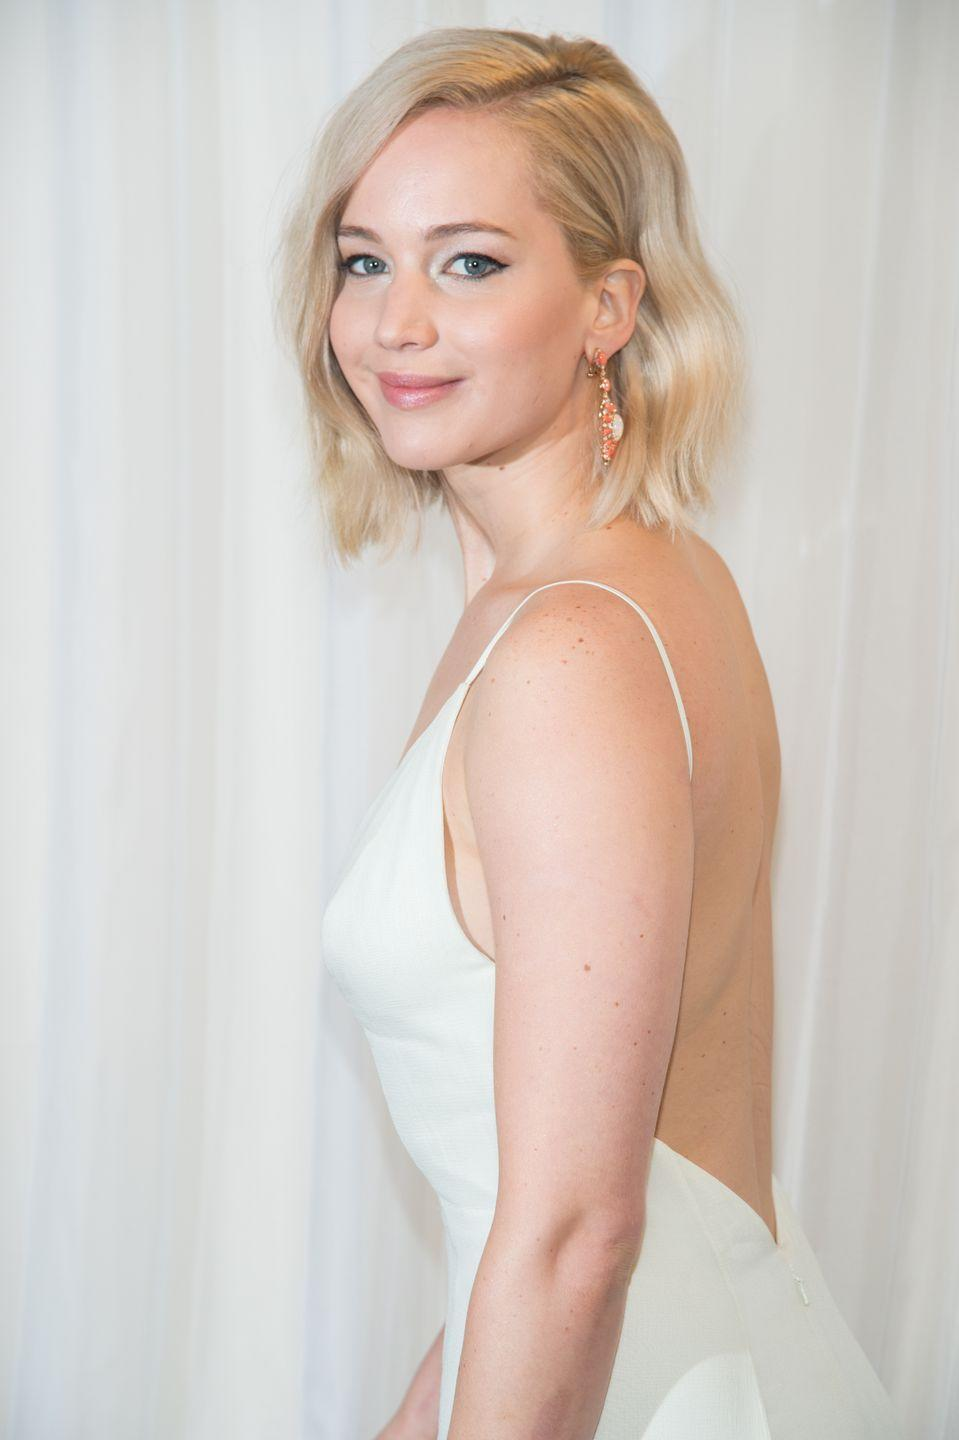 """<p>Fans were treated to one of Jennifer's candid moments when she shared her favorite kitchen creation: The Chili Pizza Sandwich. """"A piece of pizza and you put chili in it—like Southern chili, with noodles—and then you put another piece of pizza, and then you eat it like a sandwich,"""" the actress told <a href=""""https://www.glamour.com/story/jennifer-lawrence-cover"""" rel=""""nofollow noopener"""" target=""""_blank"""" data-ylk=""""slk:Glamour"""" class=""""link rapid-noclick-resp""""><em>Glamour</em></a>.</p>"""